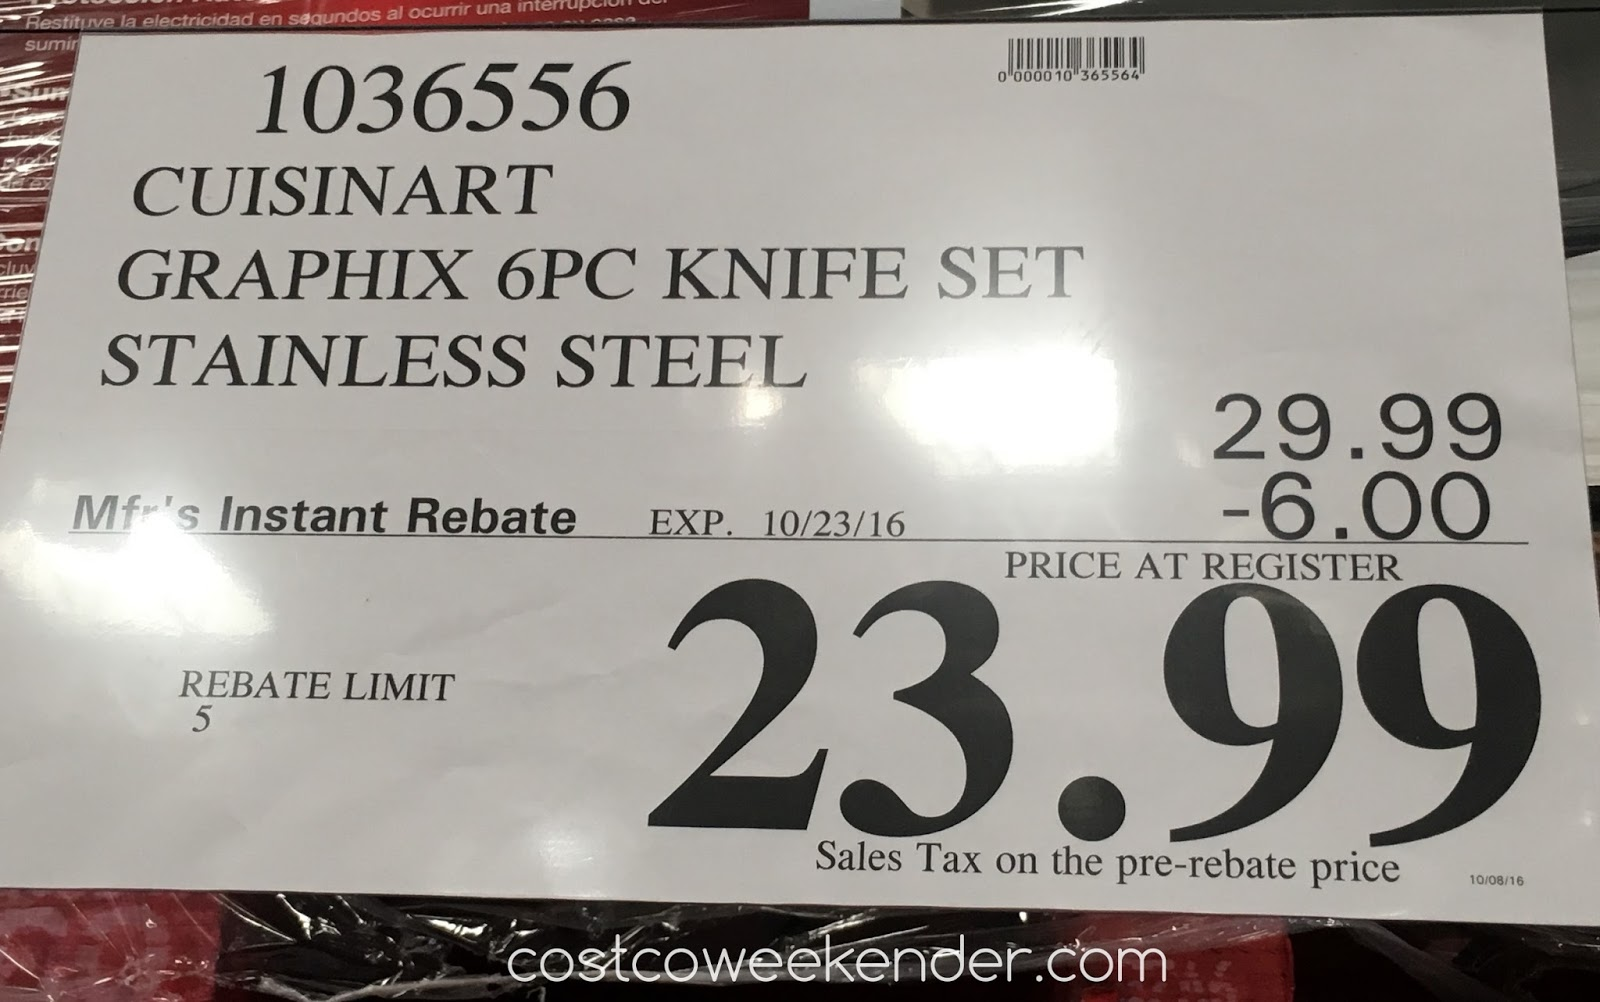 Deal for the Cuisinart Graphix 6-piece Knife Cutlery Set at Costco